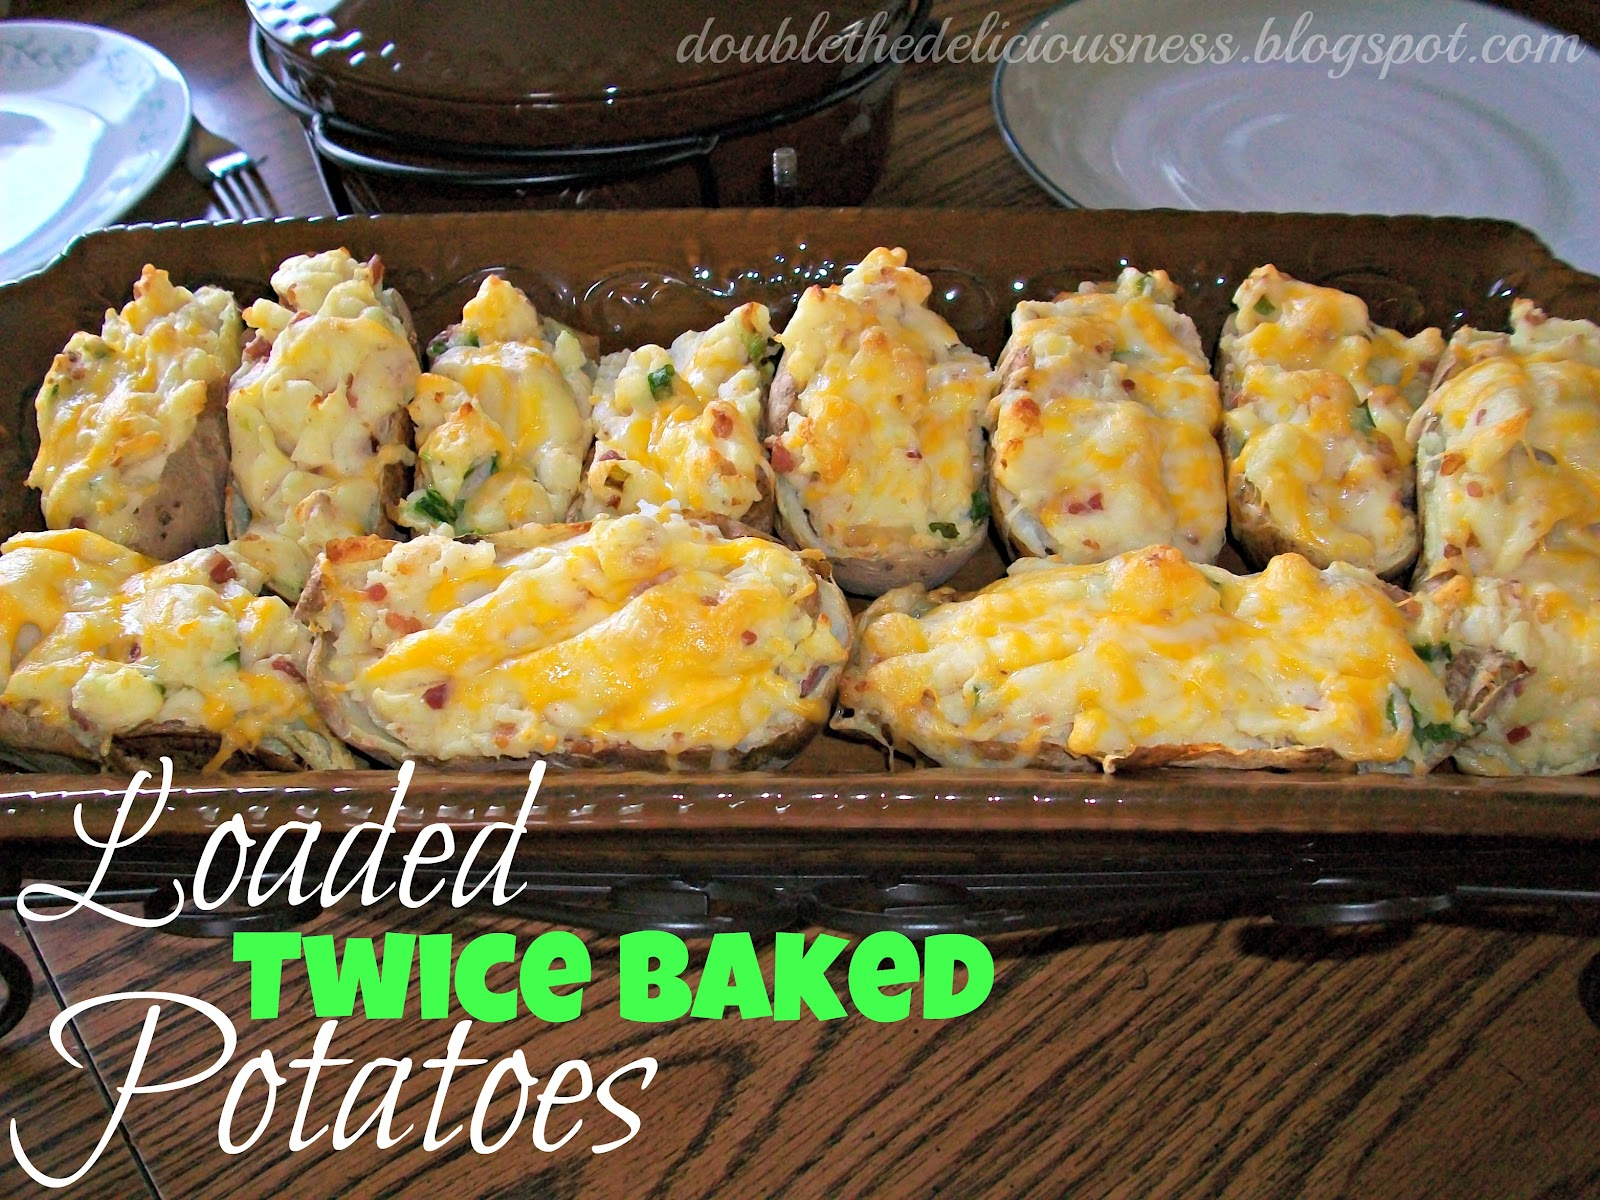 Double the Deliciousness: Loaded Twice Baked Potatoes